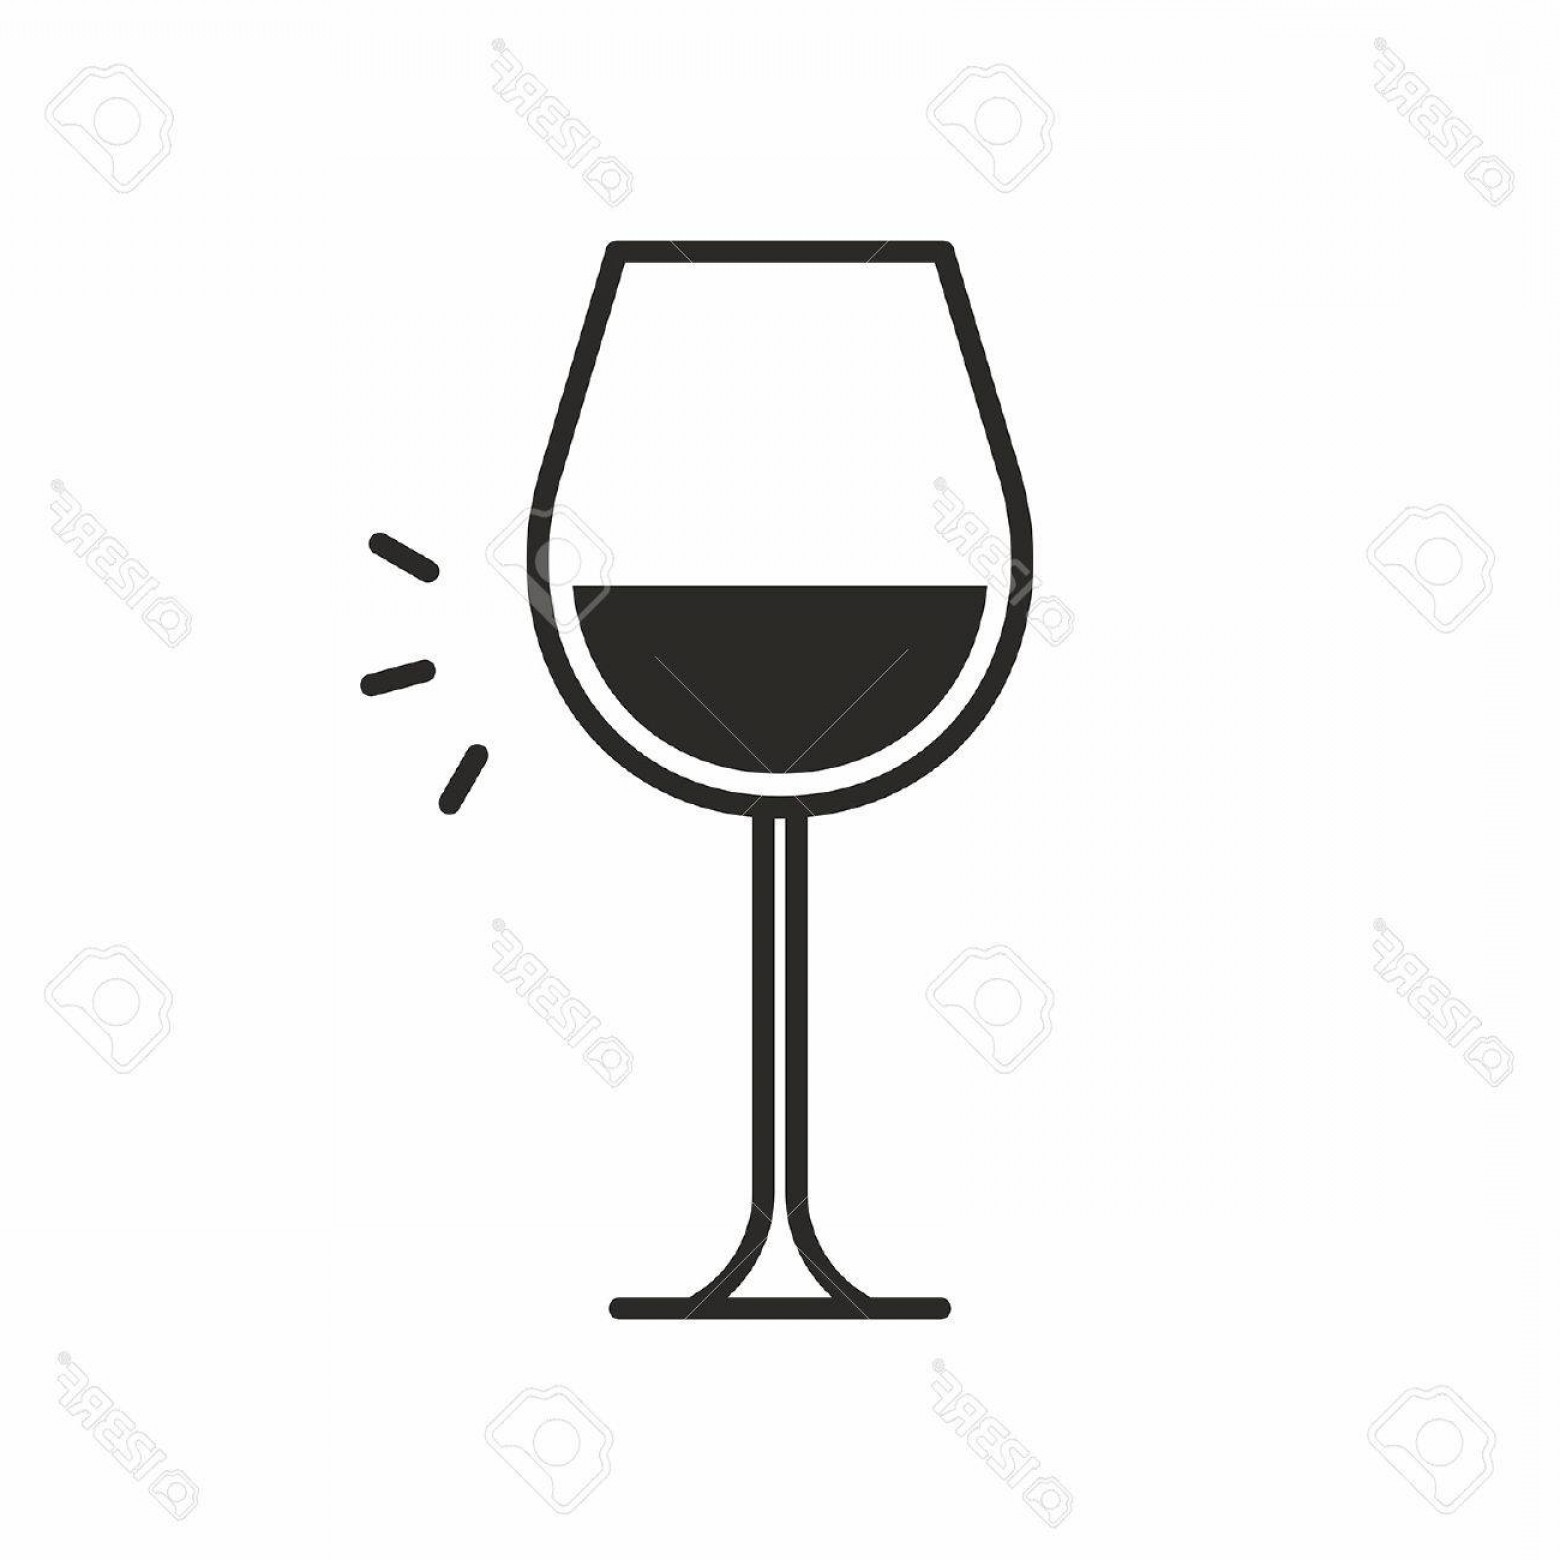 Single Wine Glass Silhouette Vector: Photostock Vector A Black Silhouette Illustration Of Alcohol In A Wine Glass Cocktail Icon Isolated On White